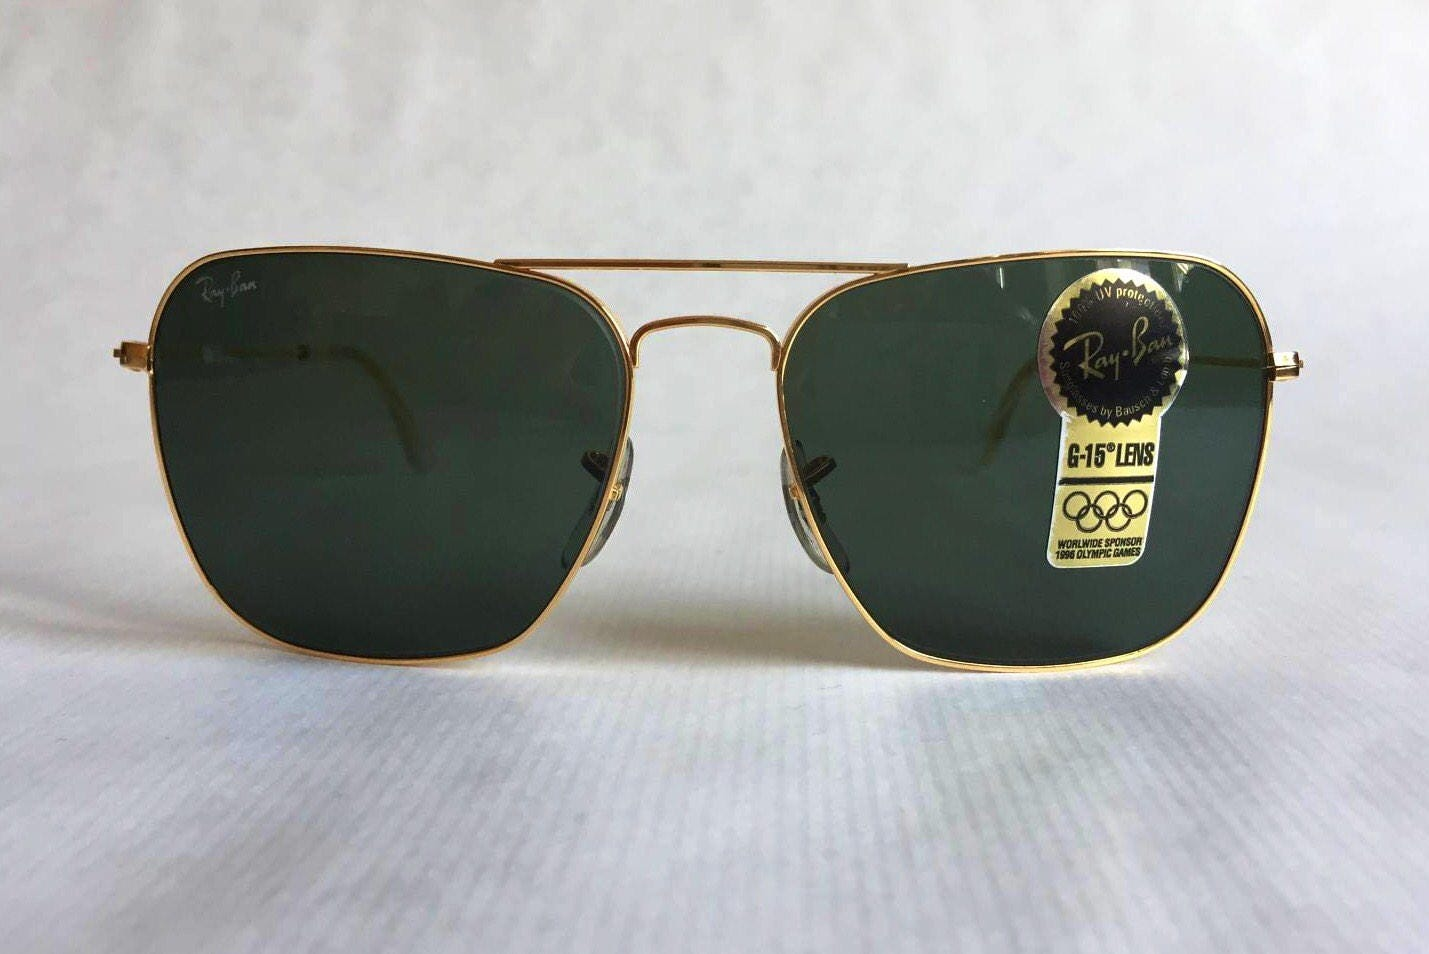 476968a7b2 Ray-Ban Caravan by Bausch   Lomb Vintage Sunglasses New Unworn Deadstock.  gallery photo ...